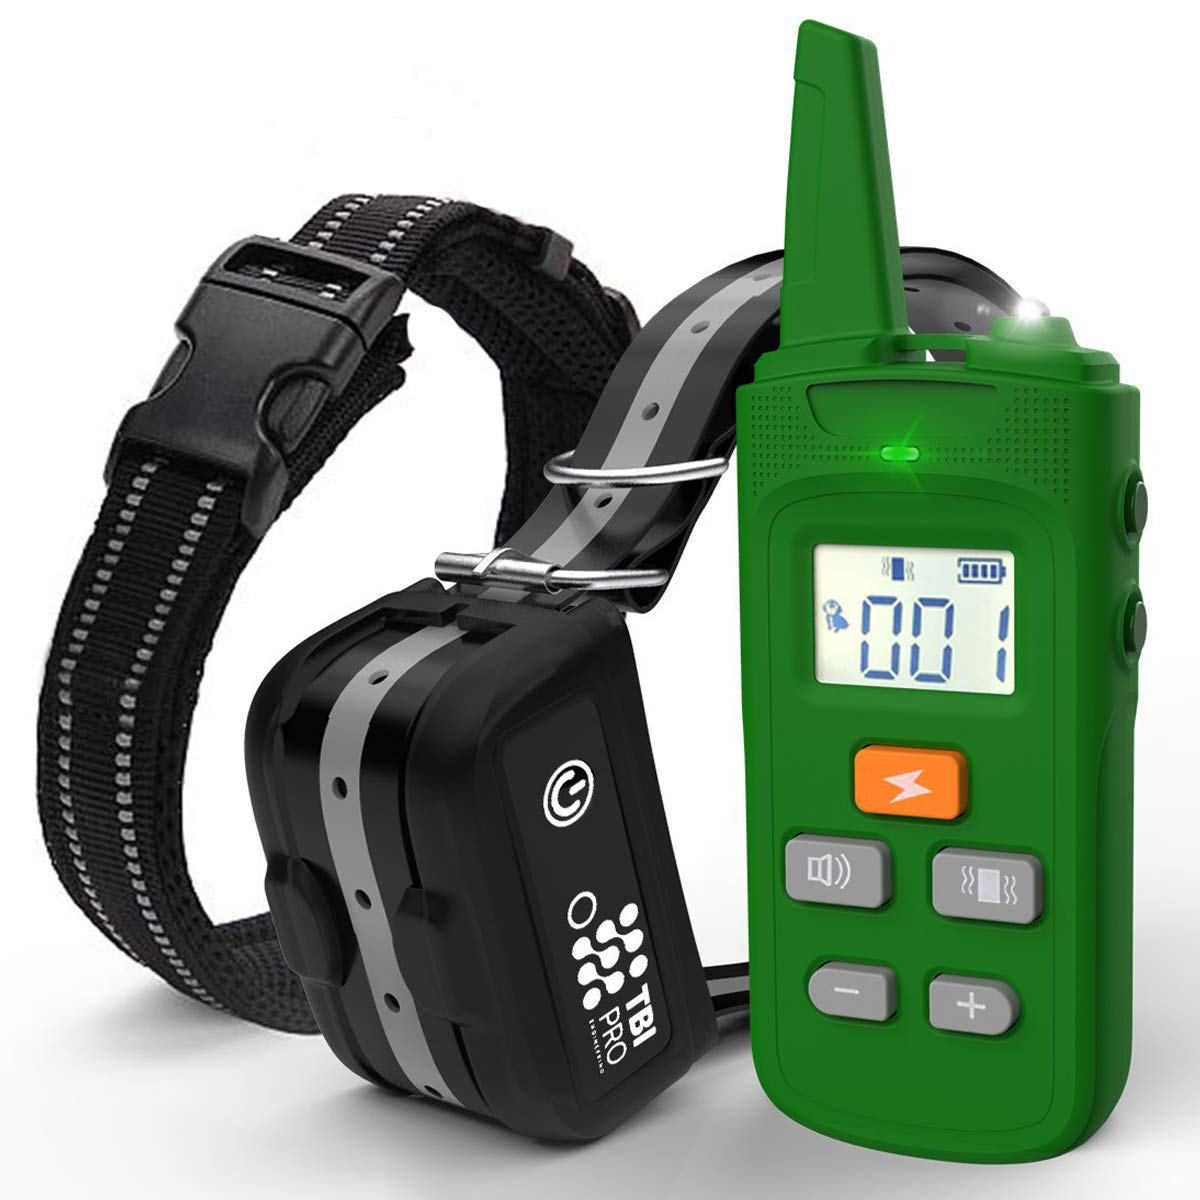 TBI Pro [All-New 2019 Dog Shock Training Collar with Remote   Heavy-Duty, Long Range 2000 ft, Rechargeable & IPX7 Waterproof   E-Collar Shock Collar for Dogs Small, Medium, Large Size, All Breeds by TBI Pro